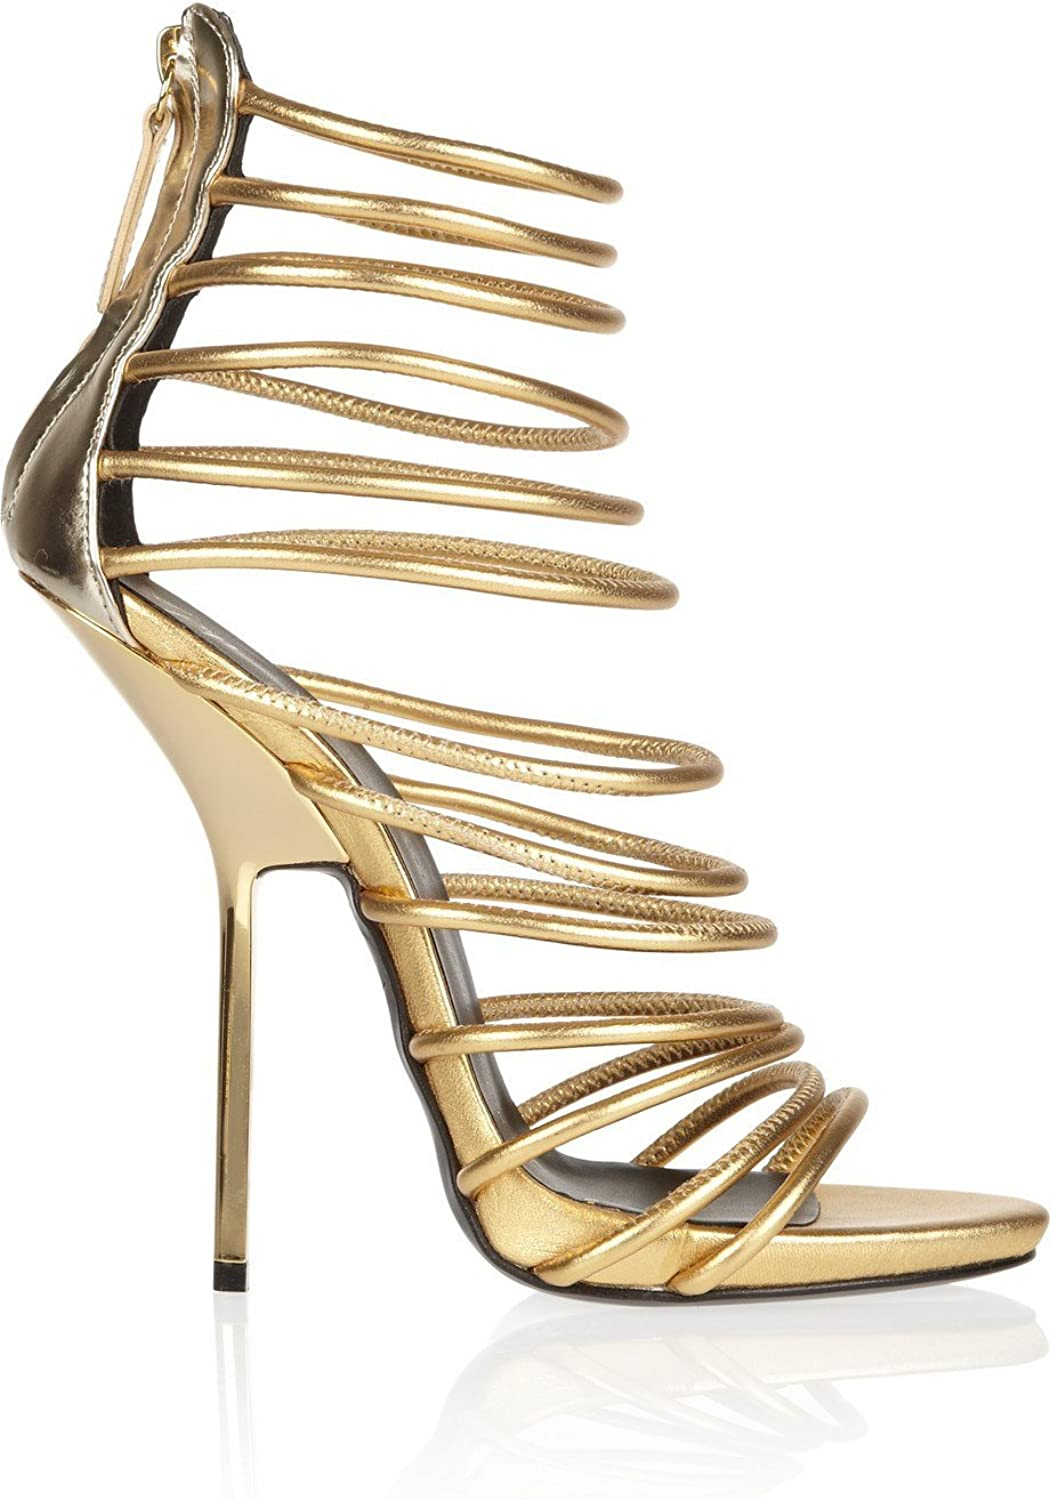 AIWEIYi Womens Open Toe Stiletto High Heels Ankle Strap Strappy Sandals gold